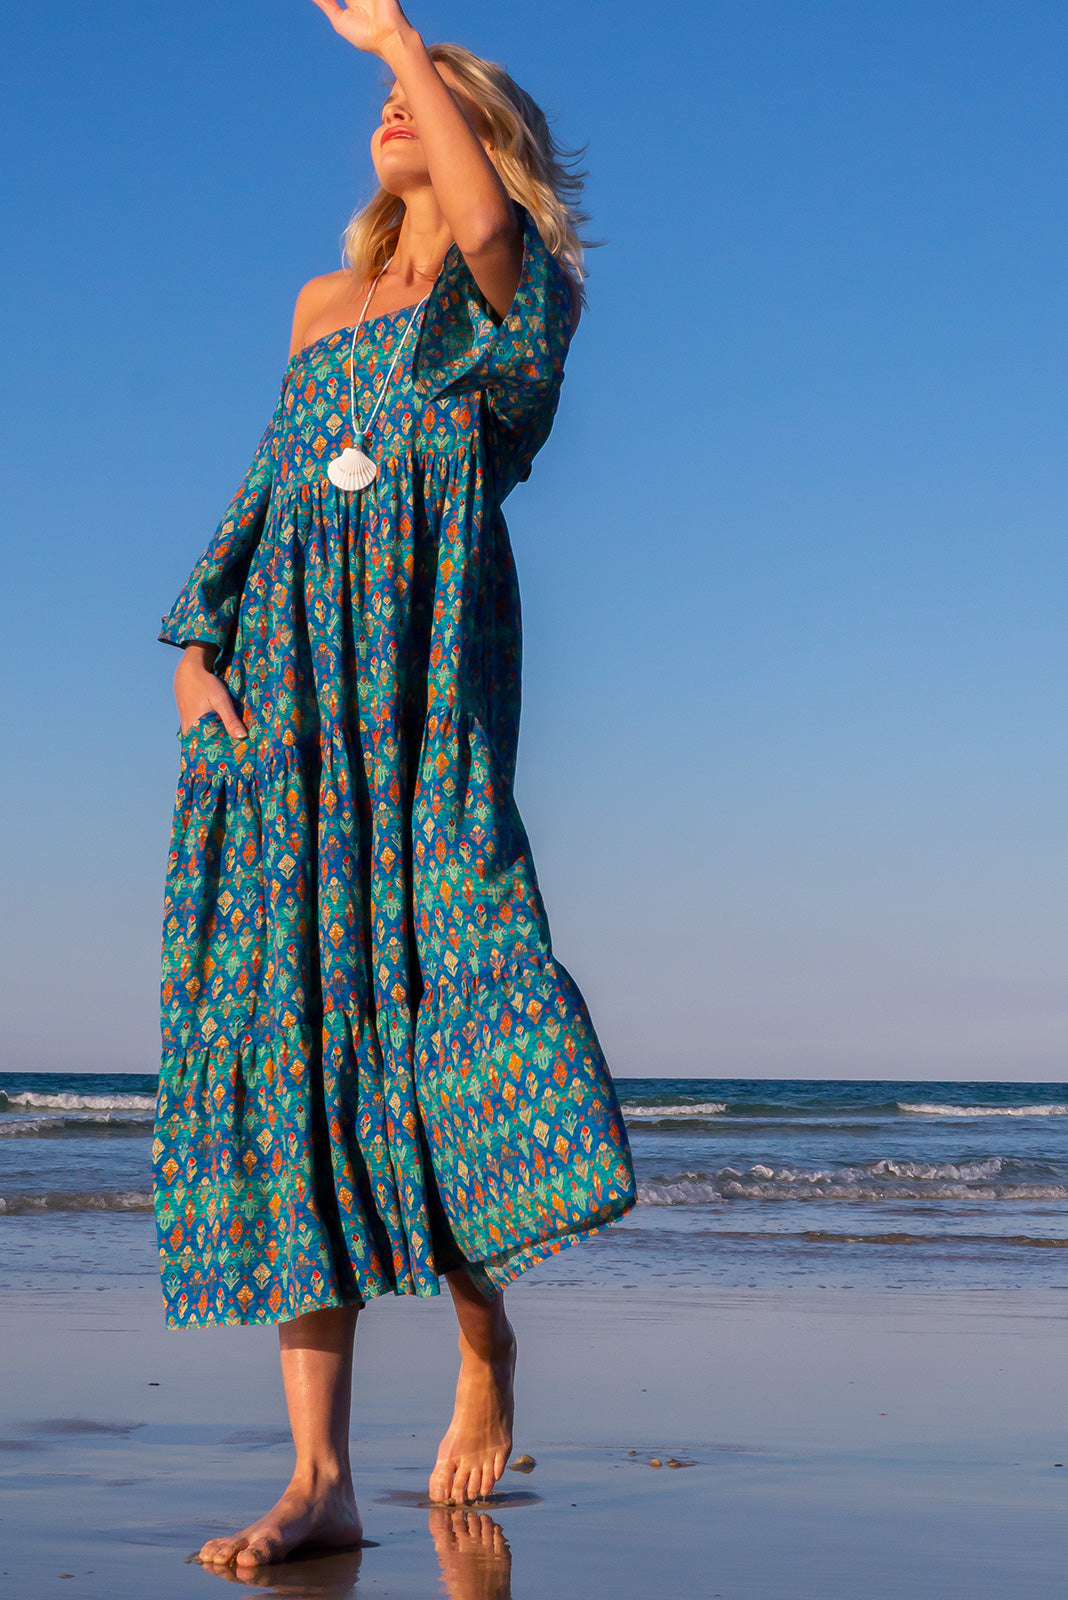 The Lulu Liberty Turquoise Aztec Swing Maxi Dress can be worn 2 ways, off the shoulder or on top of shoulders in scooped neck style and features keyhole style back detail with adjustable tie, fbric belt and 100% cotton in turquoise tie dye effect base with aztec print.